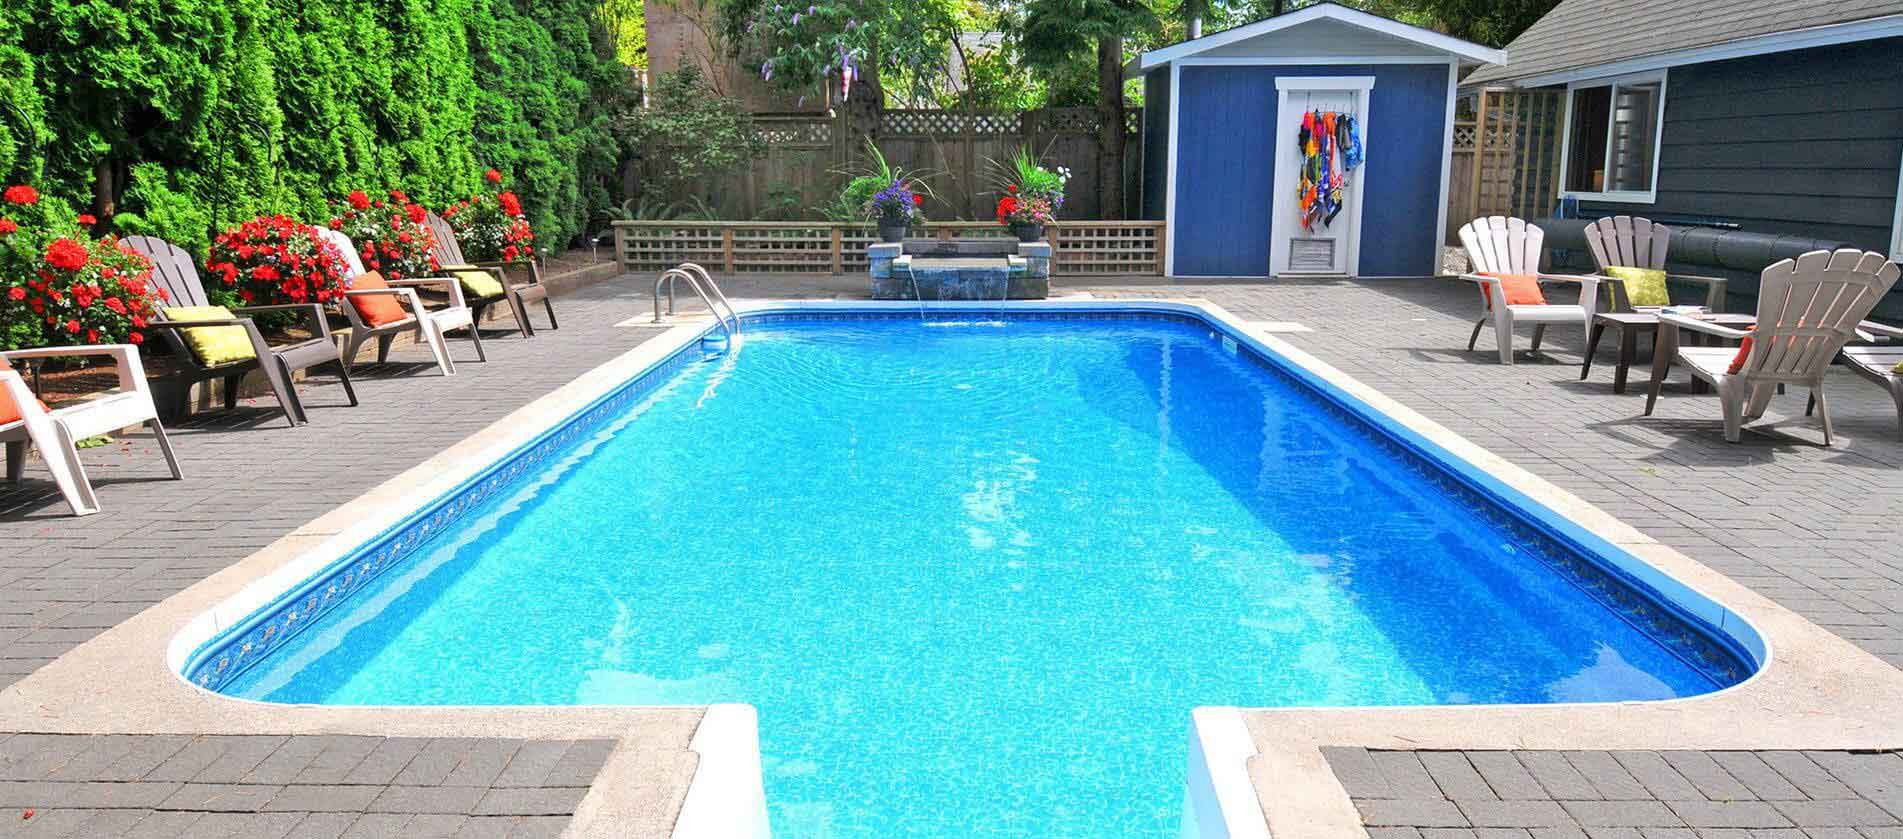 Monarch pools spas totowa nj swimming pool contractor for Pictures of a pool